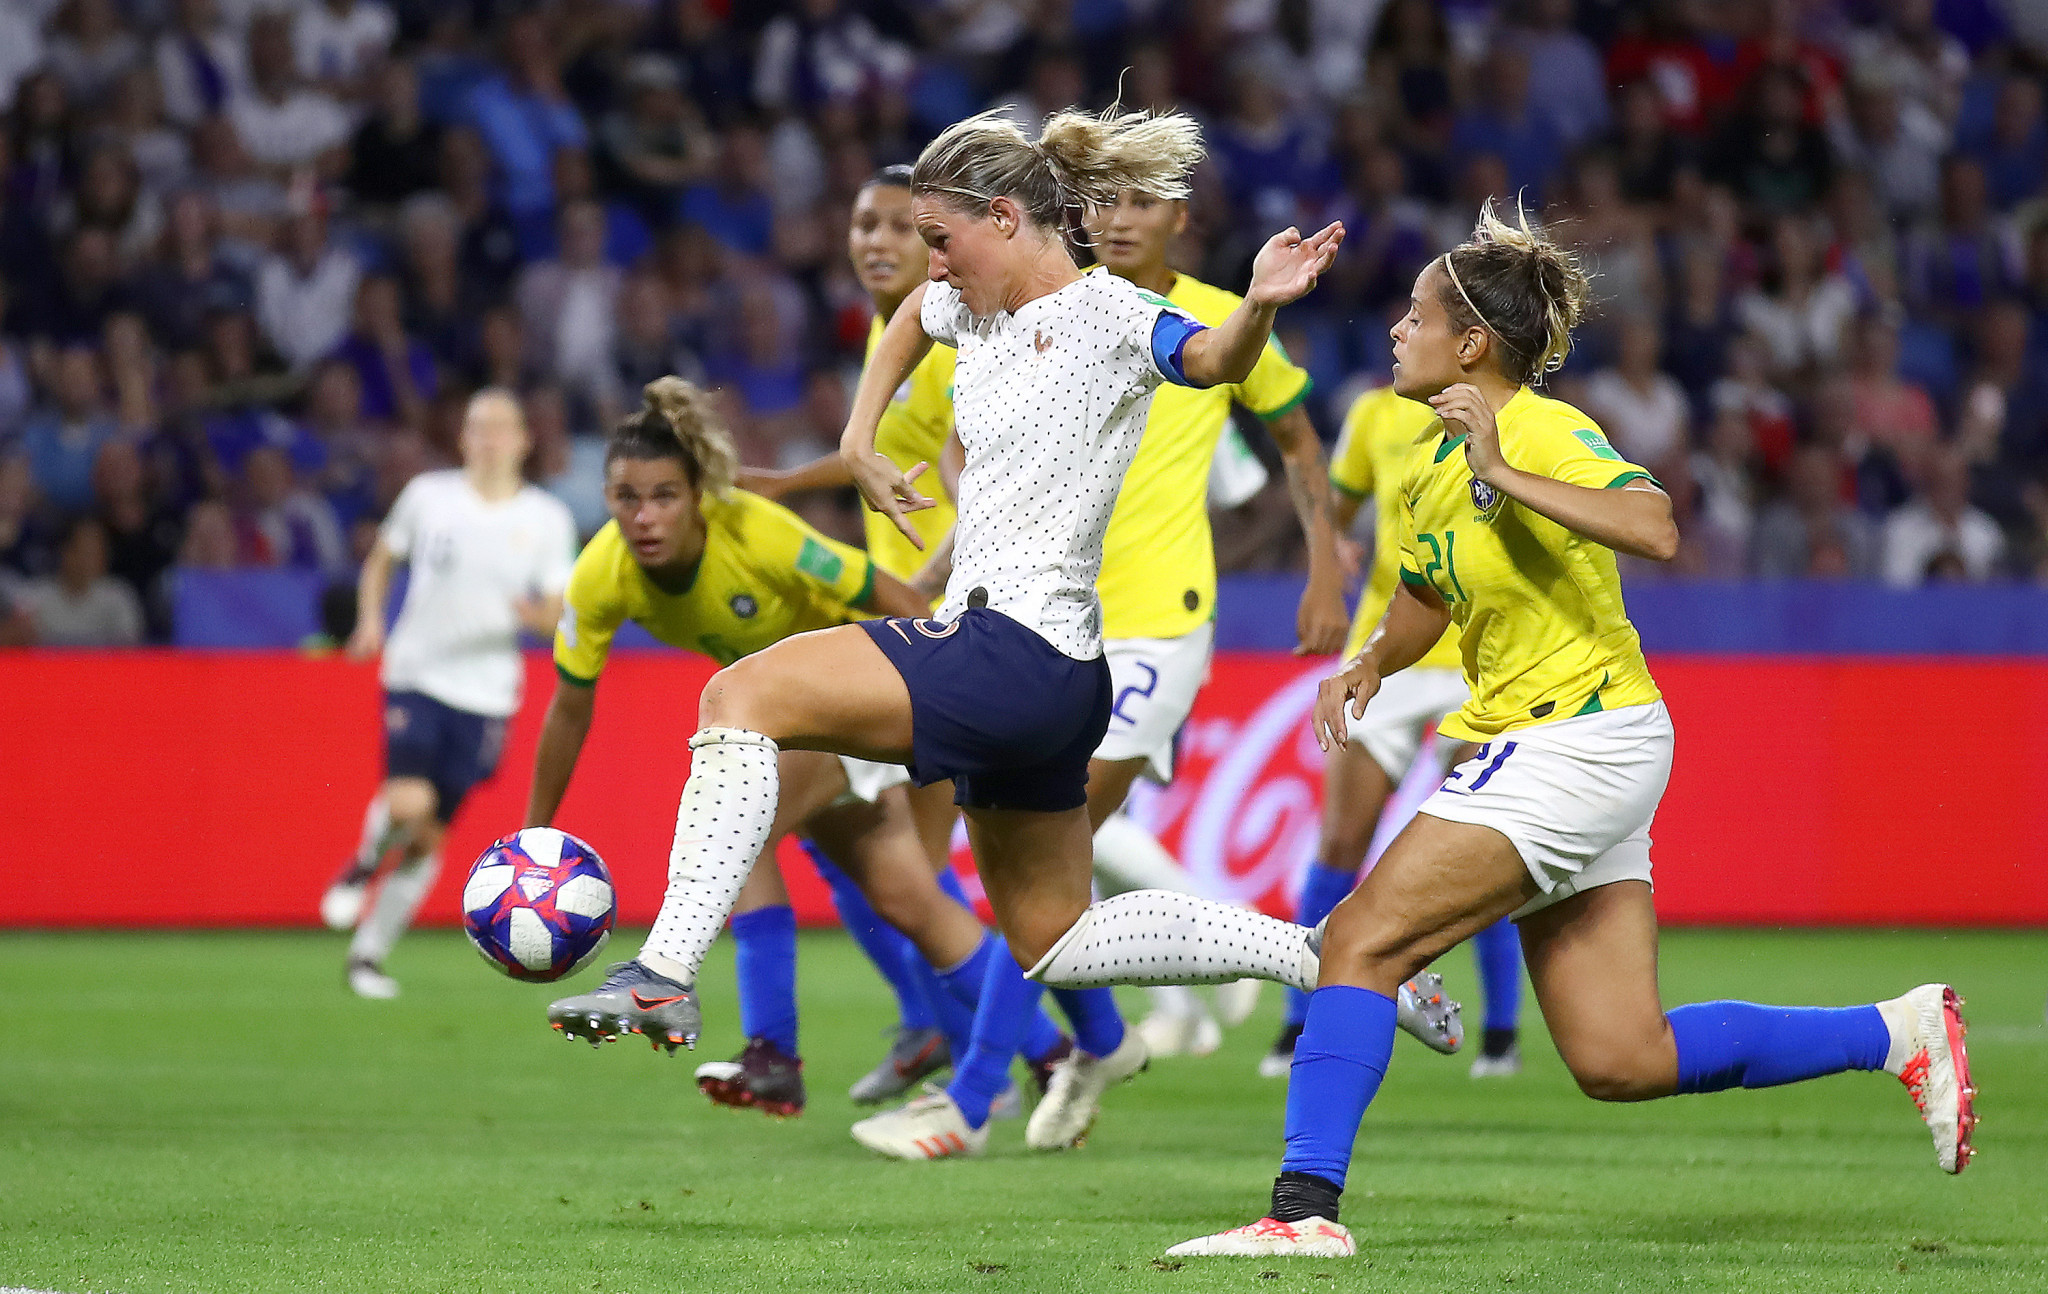 The hosts found their winner in the 107th minute when captain Amandine Henry guided home a free kick © Getty Images